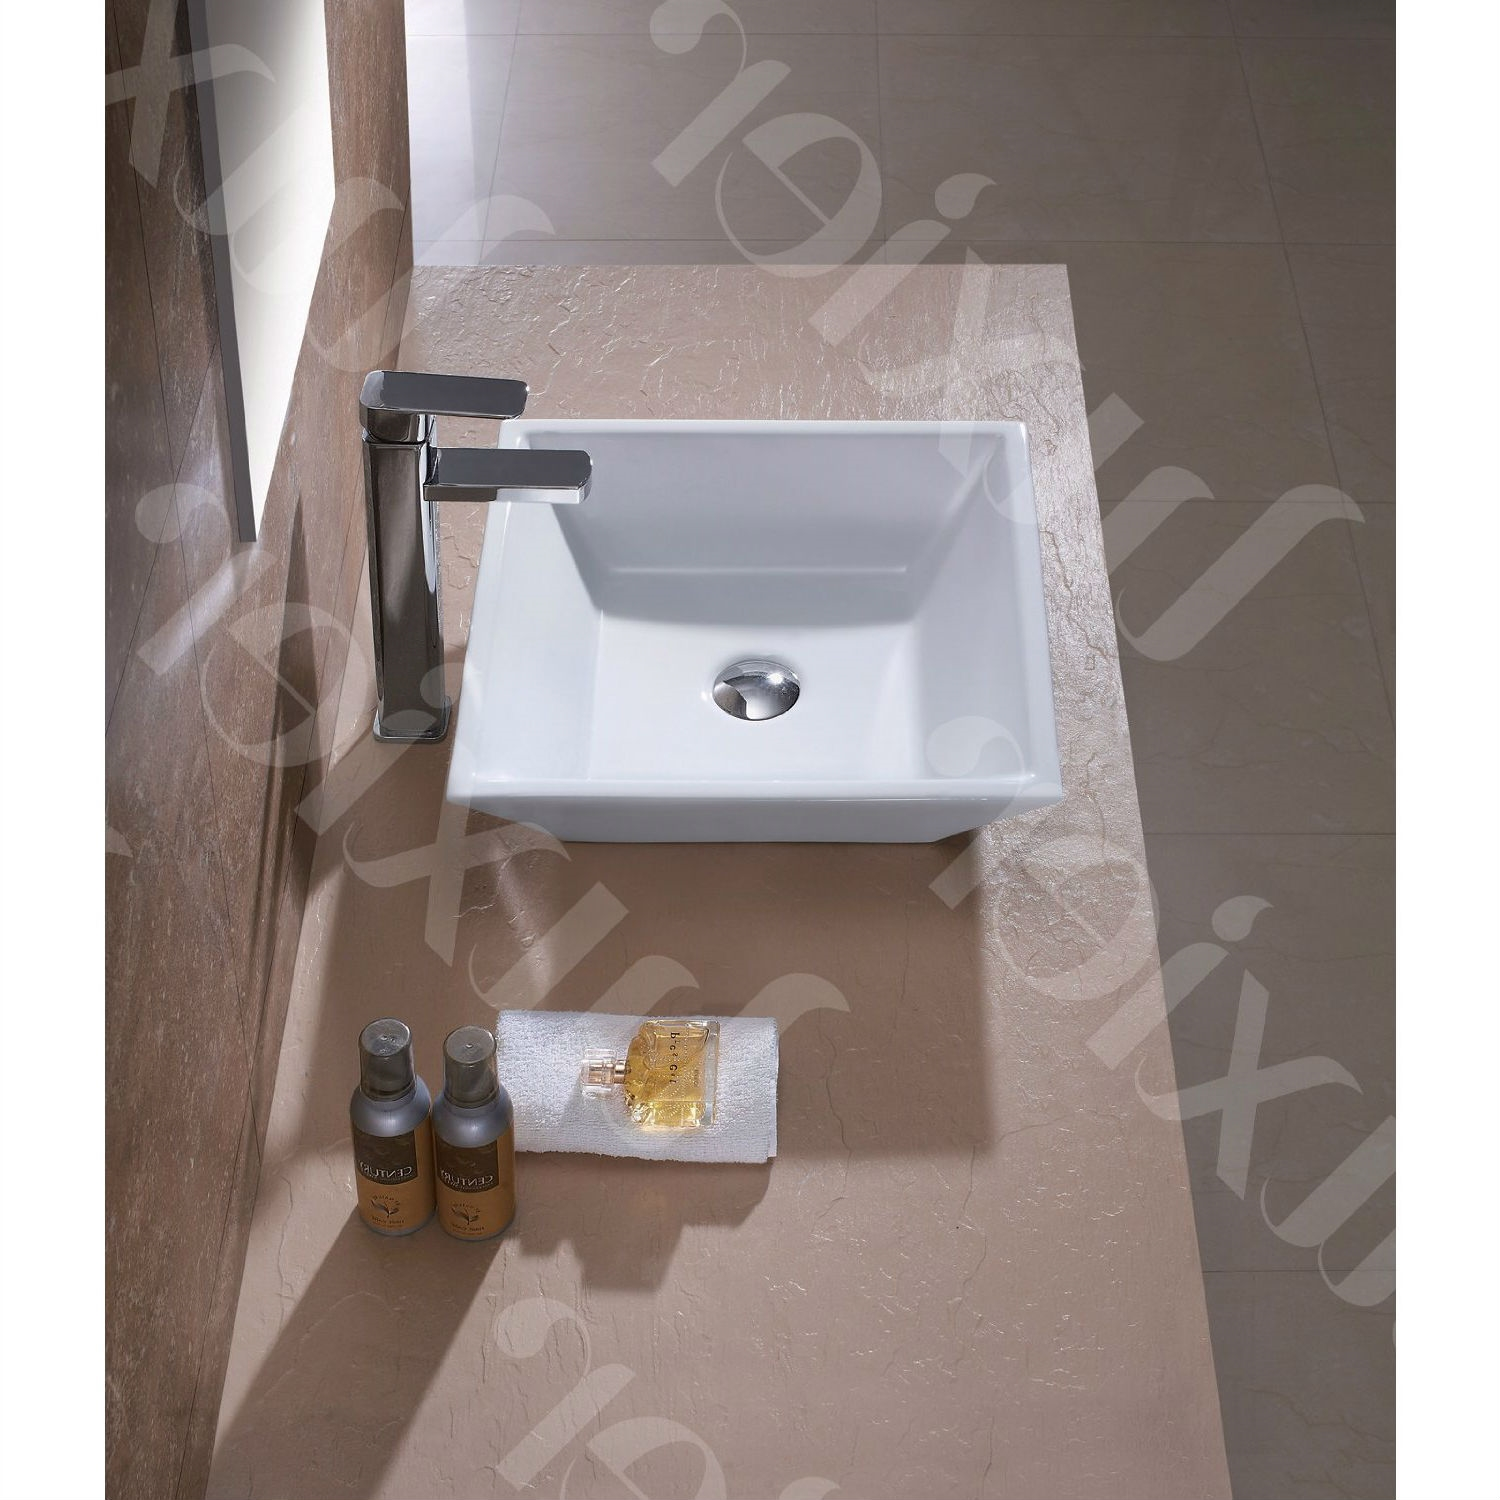 16 Inch Vanity Sink Part - 40: Retail Price: $129.00